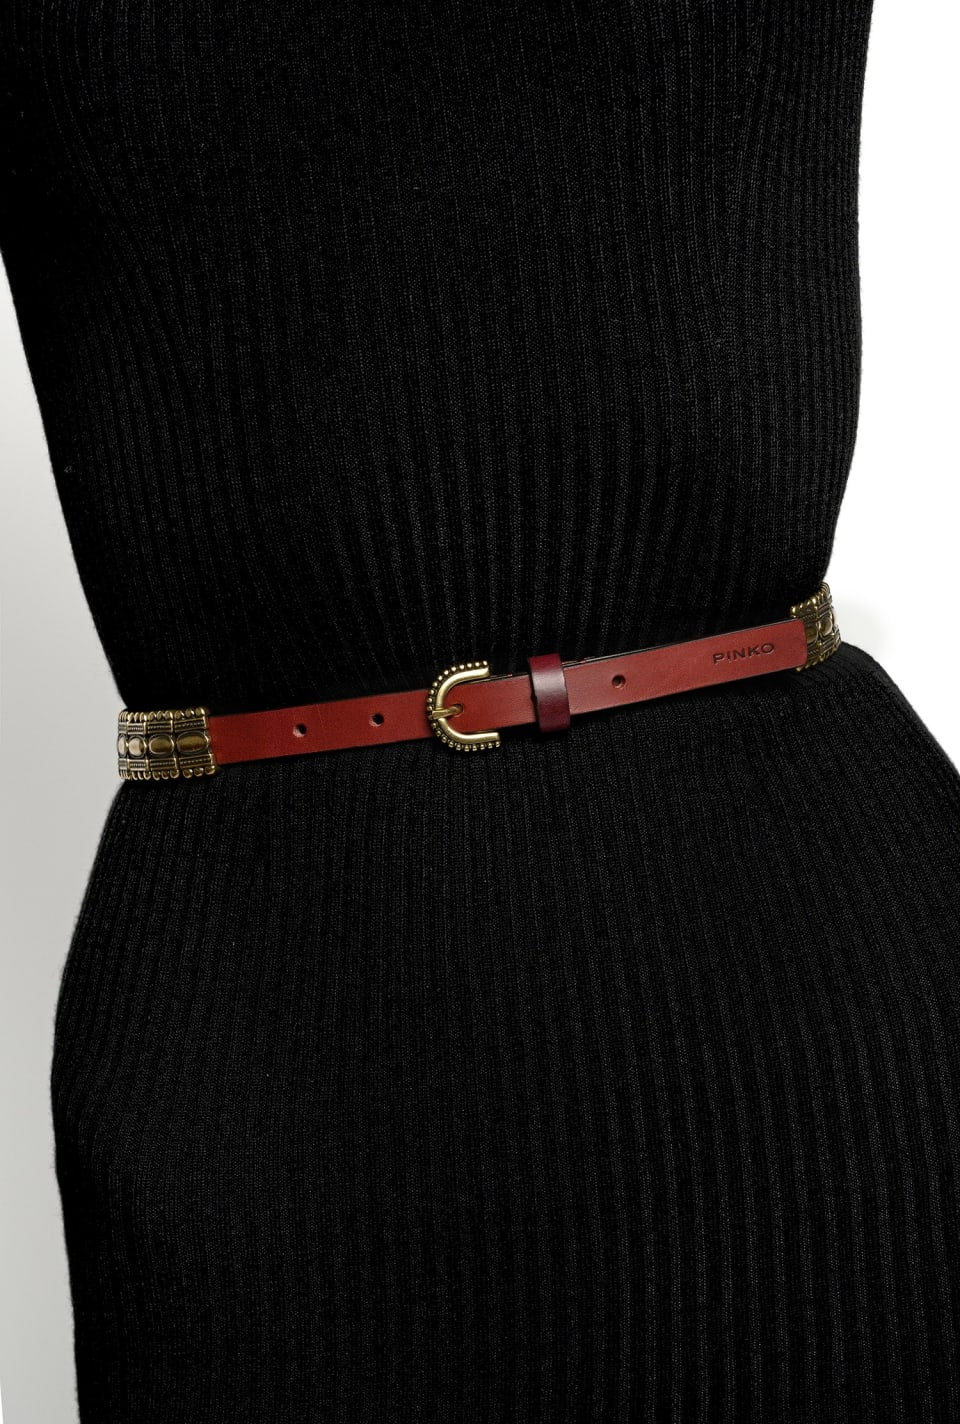 Narrow belt with metal plates - Pinko